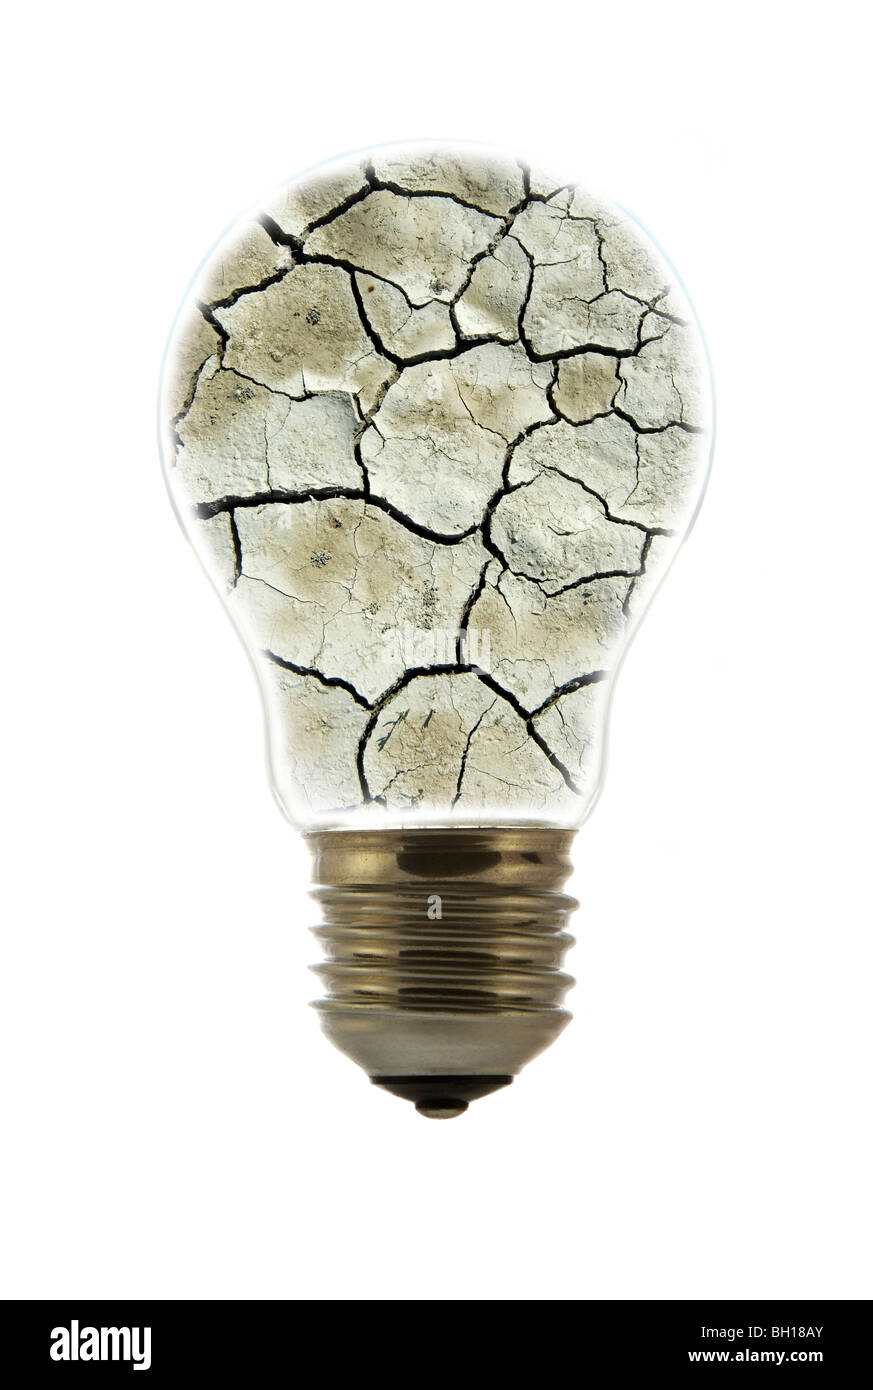 Cracked earth by drought inside incandescent lamp / bulb against white background - Stock Image